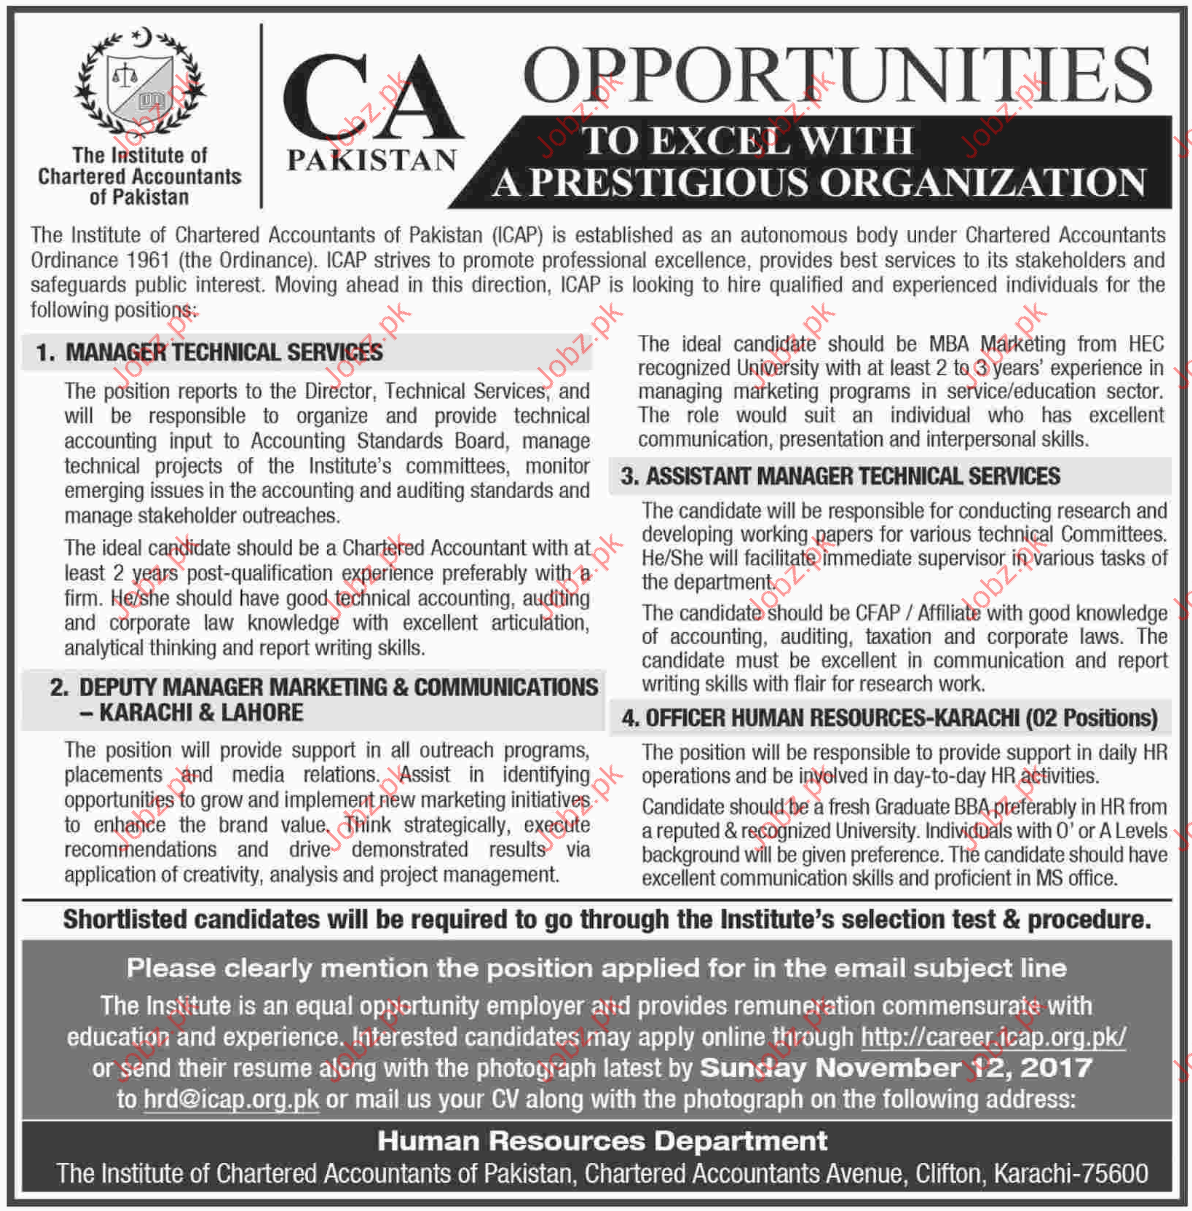 CA Pakistan Jobs Opportunity